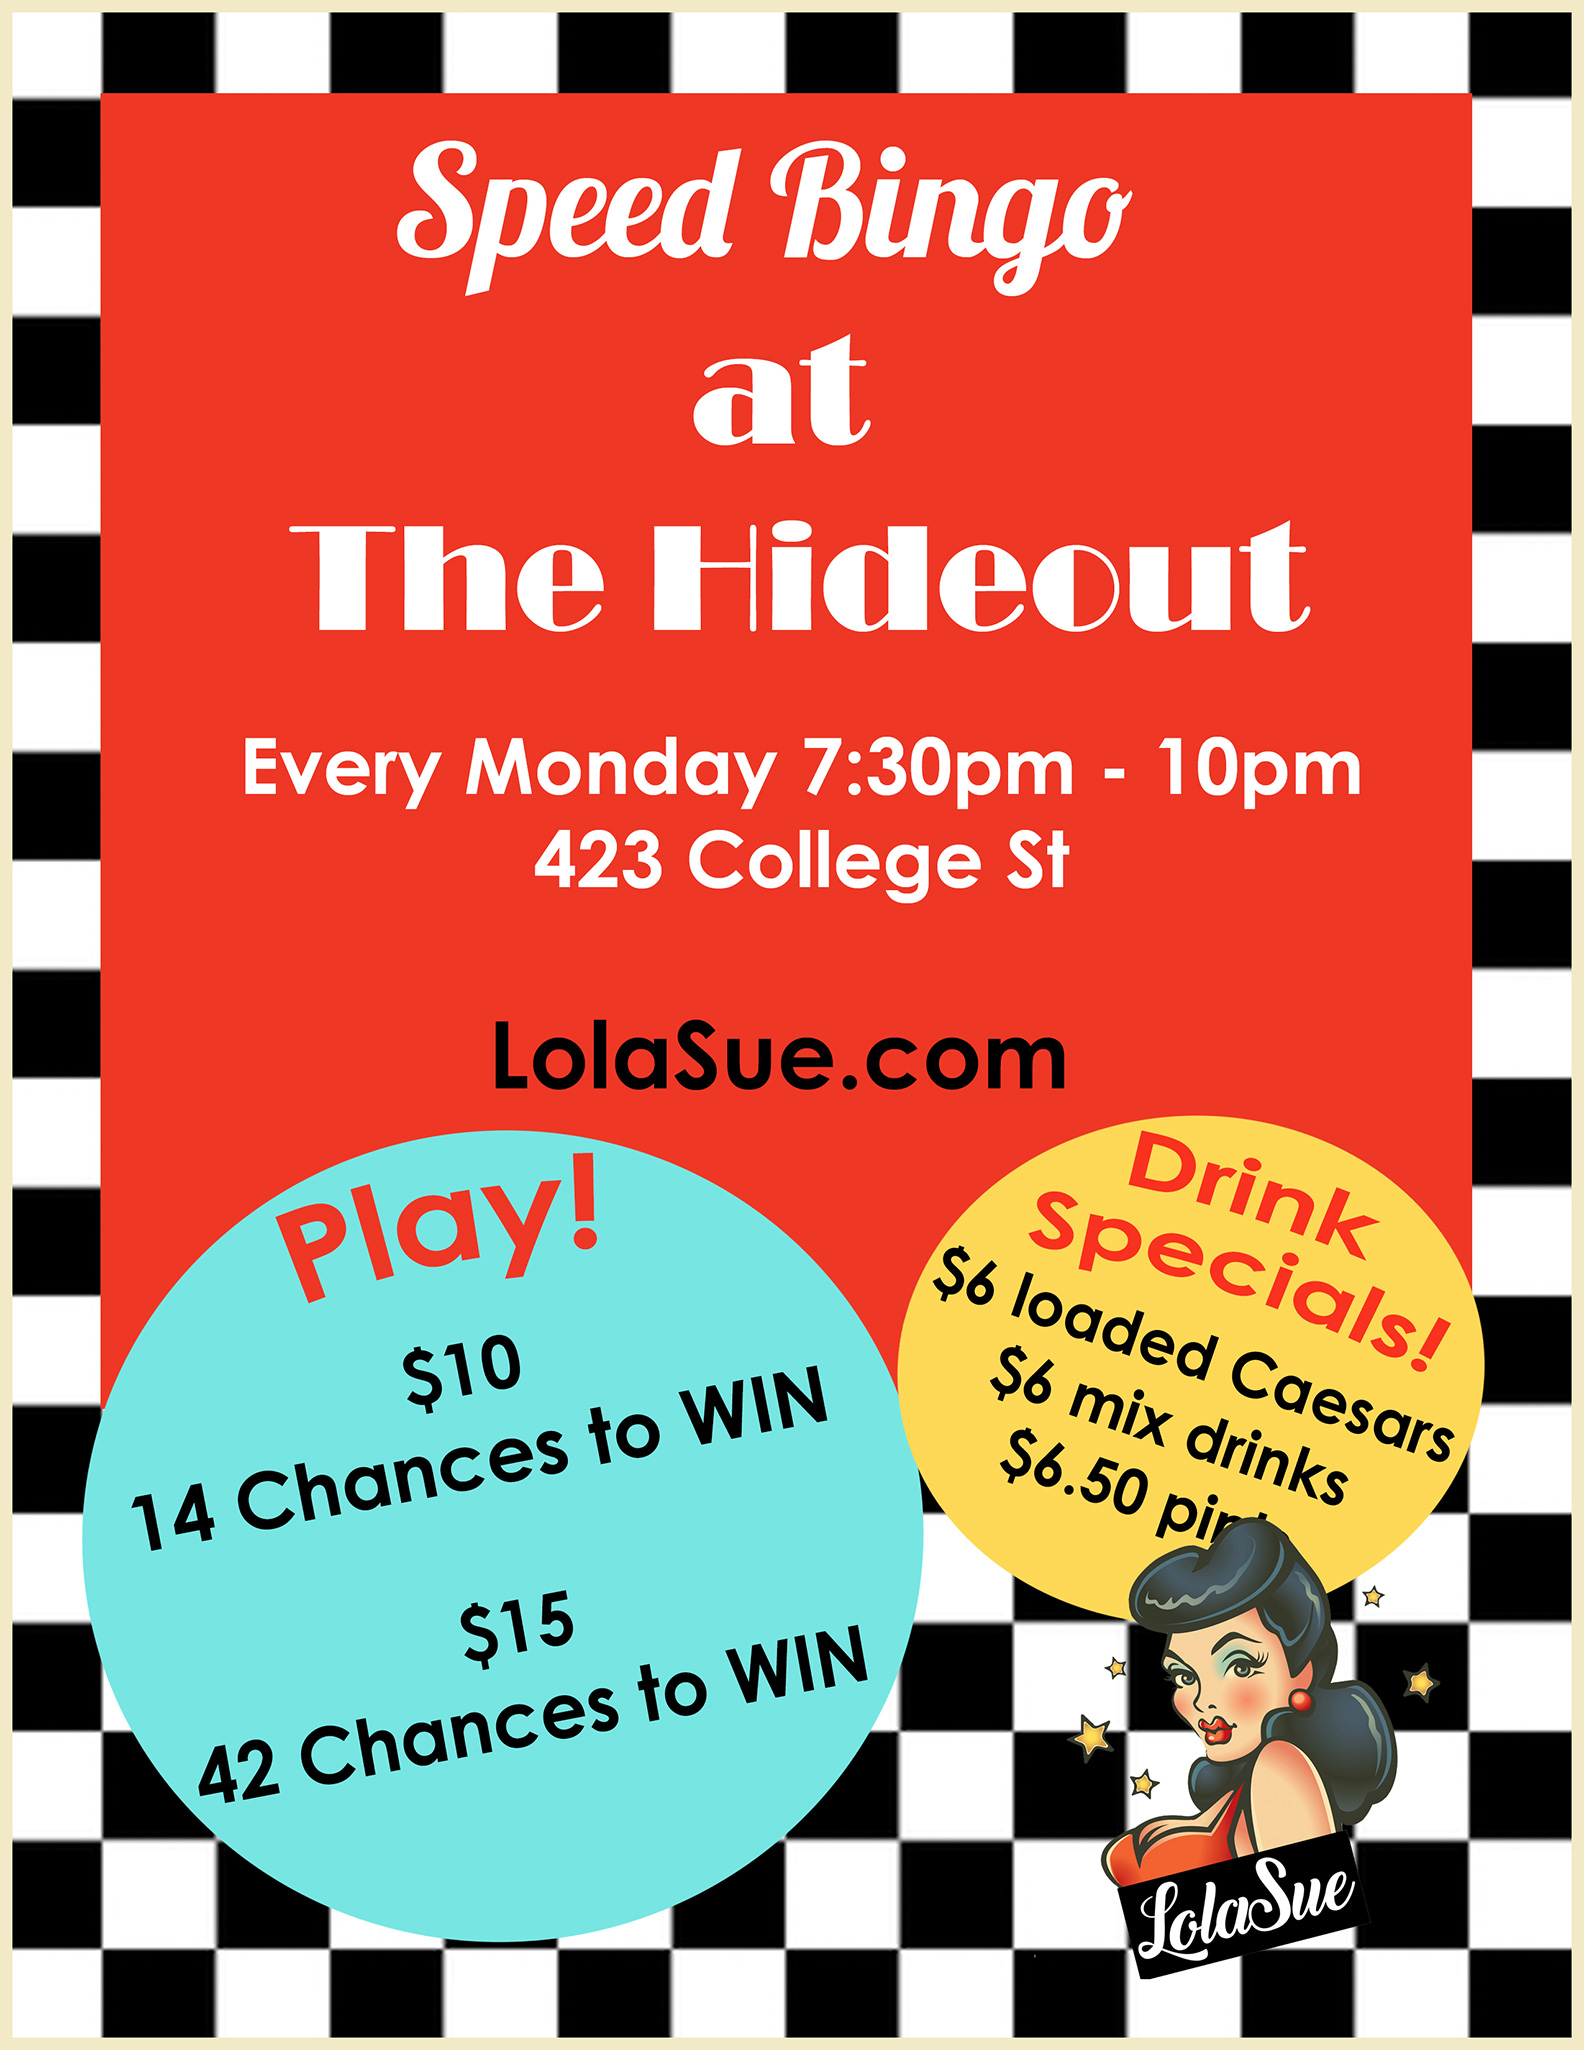 14 Chances to WIN - $10 42 Chances to WIN - $15  LolaSue has teamed up with The Hideout to bring you some bingo fun, every MONDAY!  This revamped night is not to be confused with your grandparent's bingo (unless your grandparents are super cool, then it's exactly like the bingo nights that they would go to).  Speed Bingo is a night of SPEED ROUNDS ONLY with a side bet for each game - that means no board, just numbers being called...fast. Side bets are extras that increase your chances of walking away with a little something in hand (and helping add to the thrilling chaos of the night!)  On top of all of that, you'll get to indulge in The Hideout's amazing Speed Bingo drink specials like $6 loaded Caesars, mixed drinks, and $6.50 pints!  Filled with music, drinks, prizes, and more this event is perfect for everyone who wants to embrace some kid-like fun in a cool-adult kind of way.